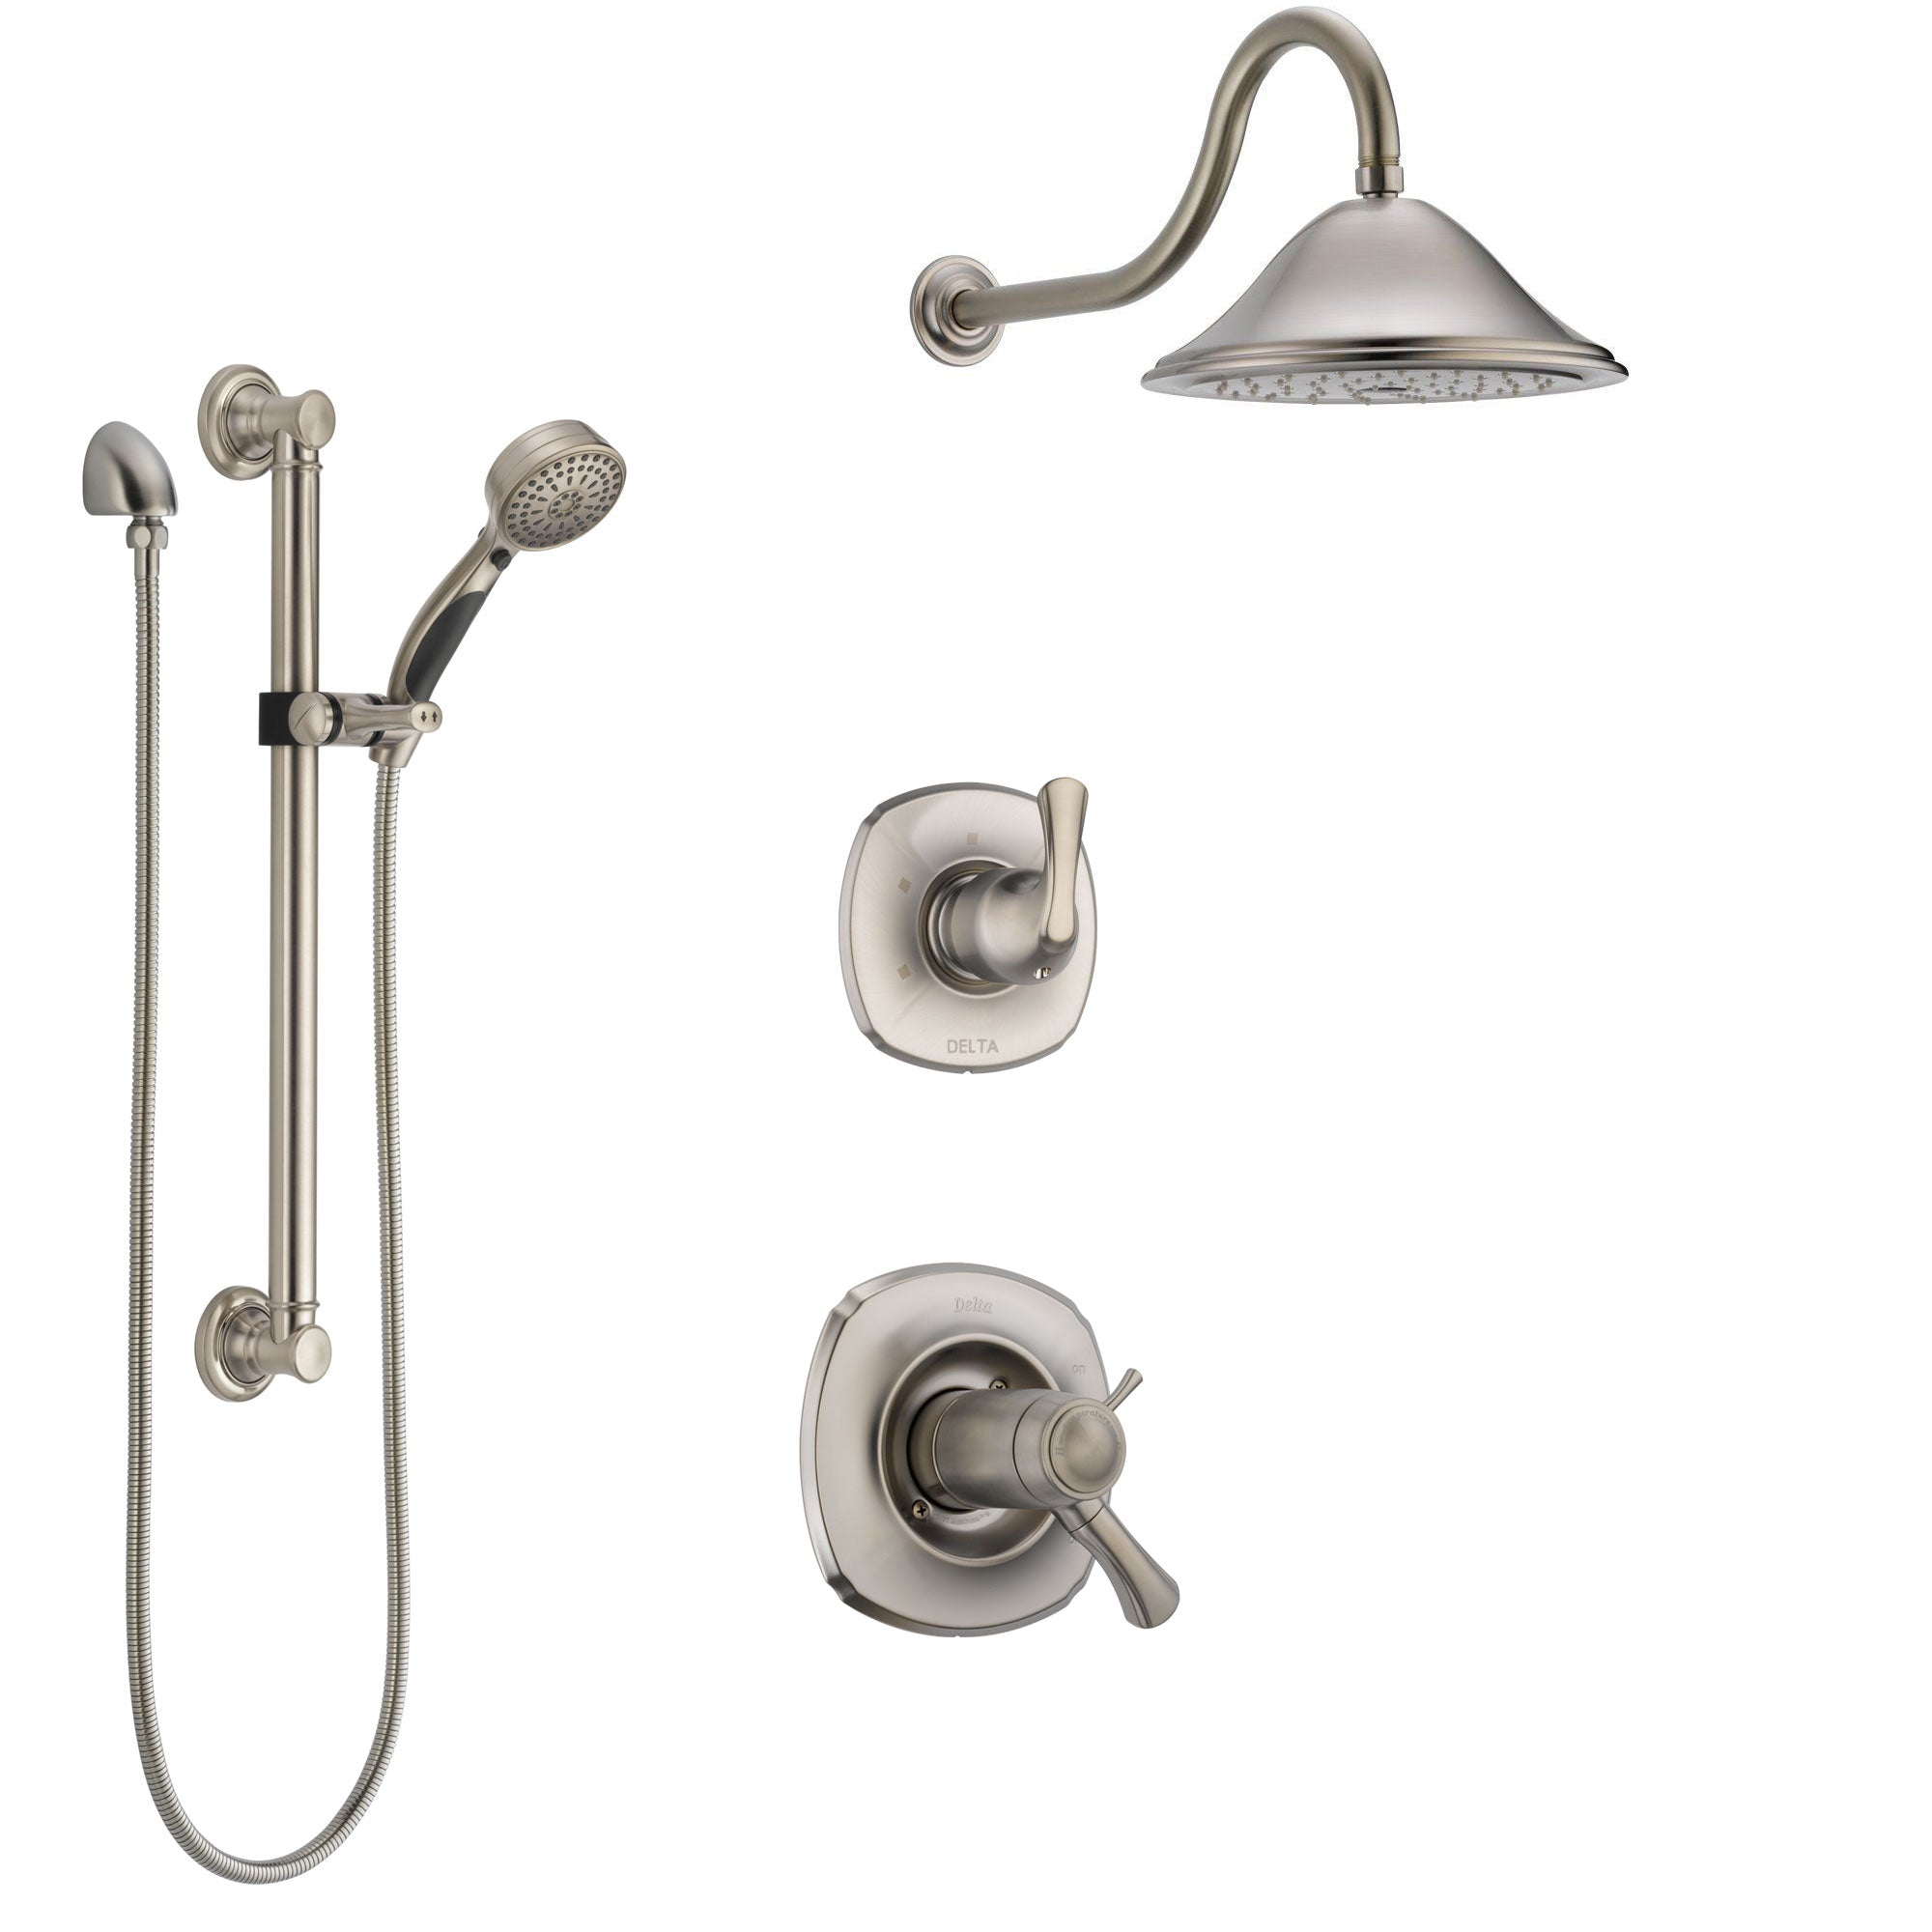 Delta Addison Dual Thermostatic Control Handle Stainless Steel Finish Shower System, Diverter, Showerhead, and Hand Shower with Grab Bar SS17T921SS1